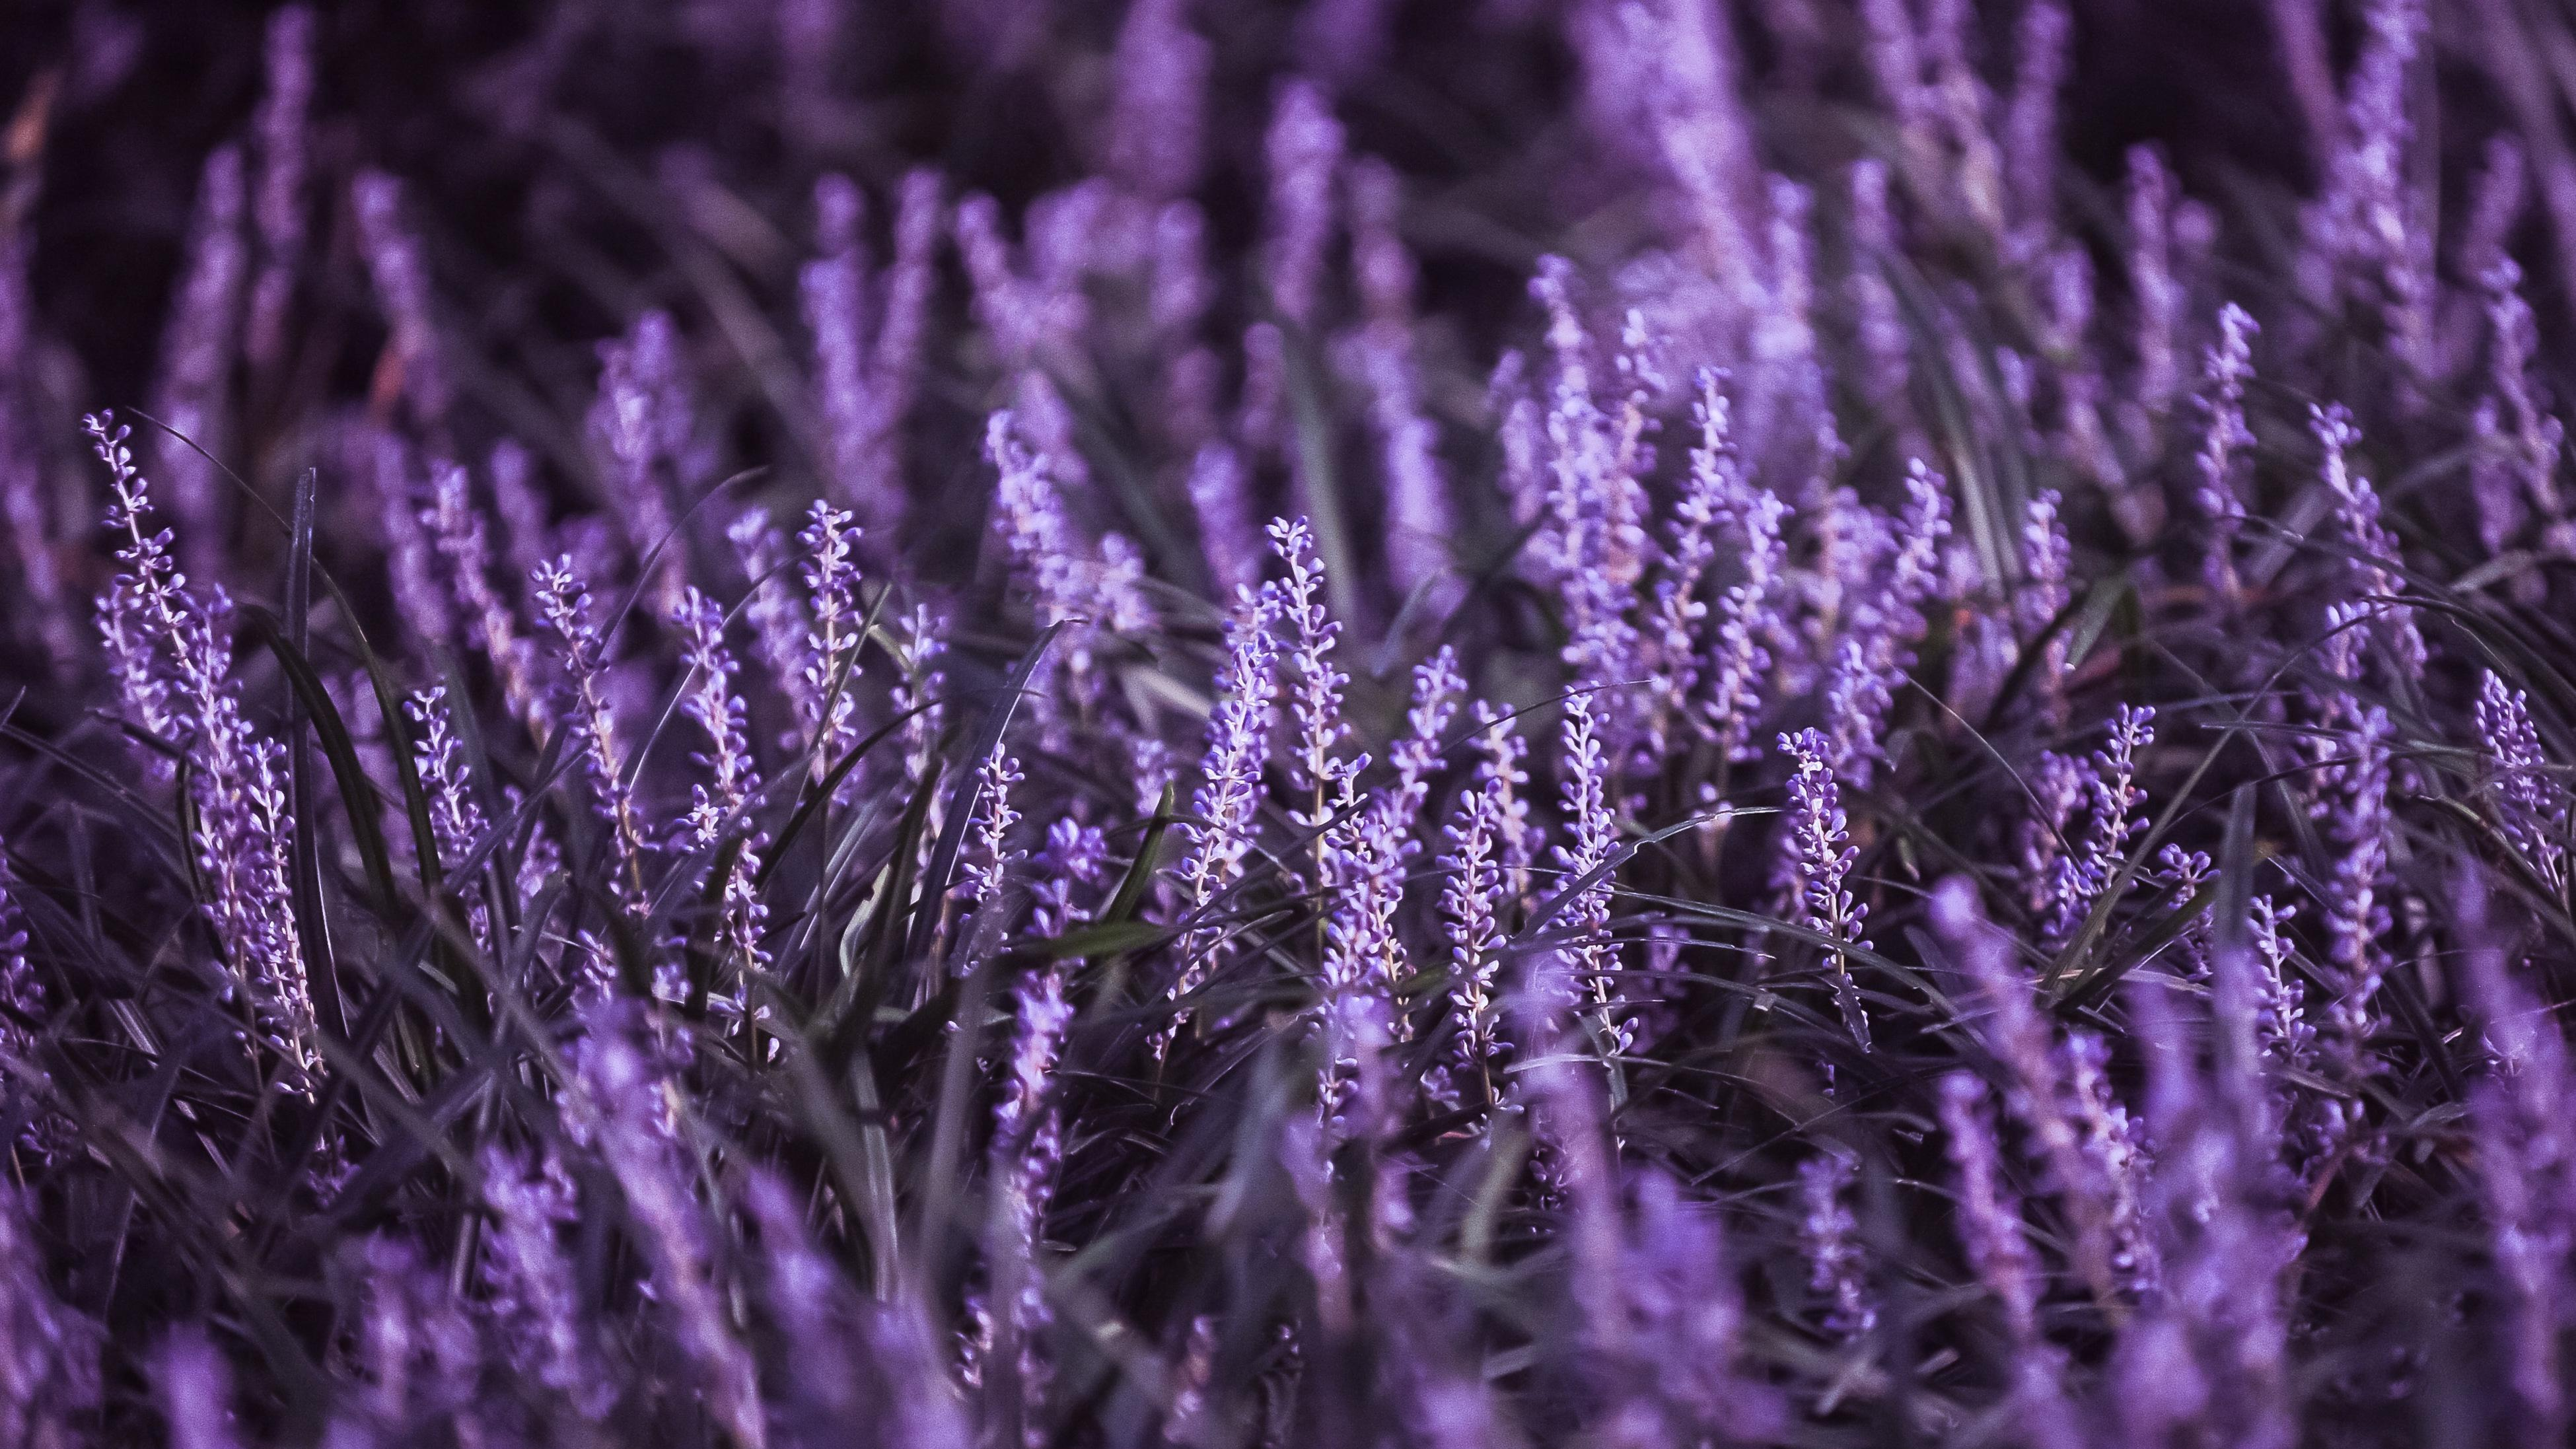 Vibrant purple hue of salvia flowers in a close up